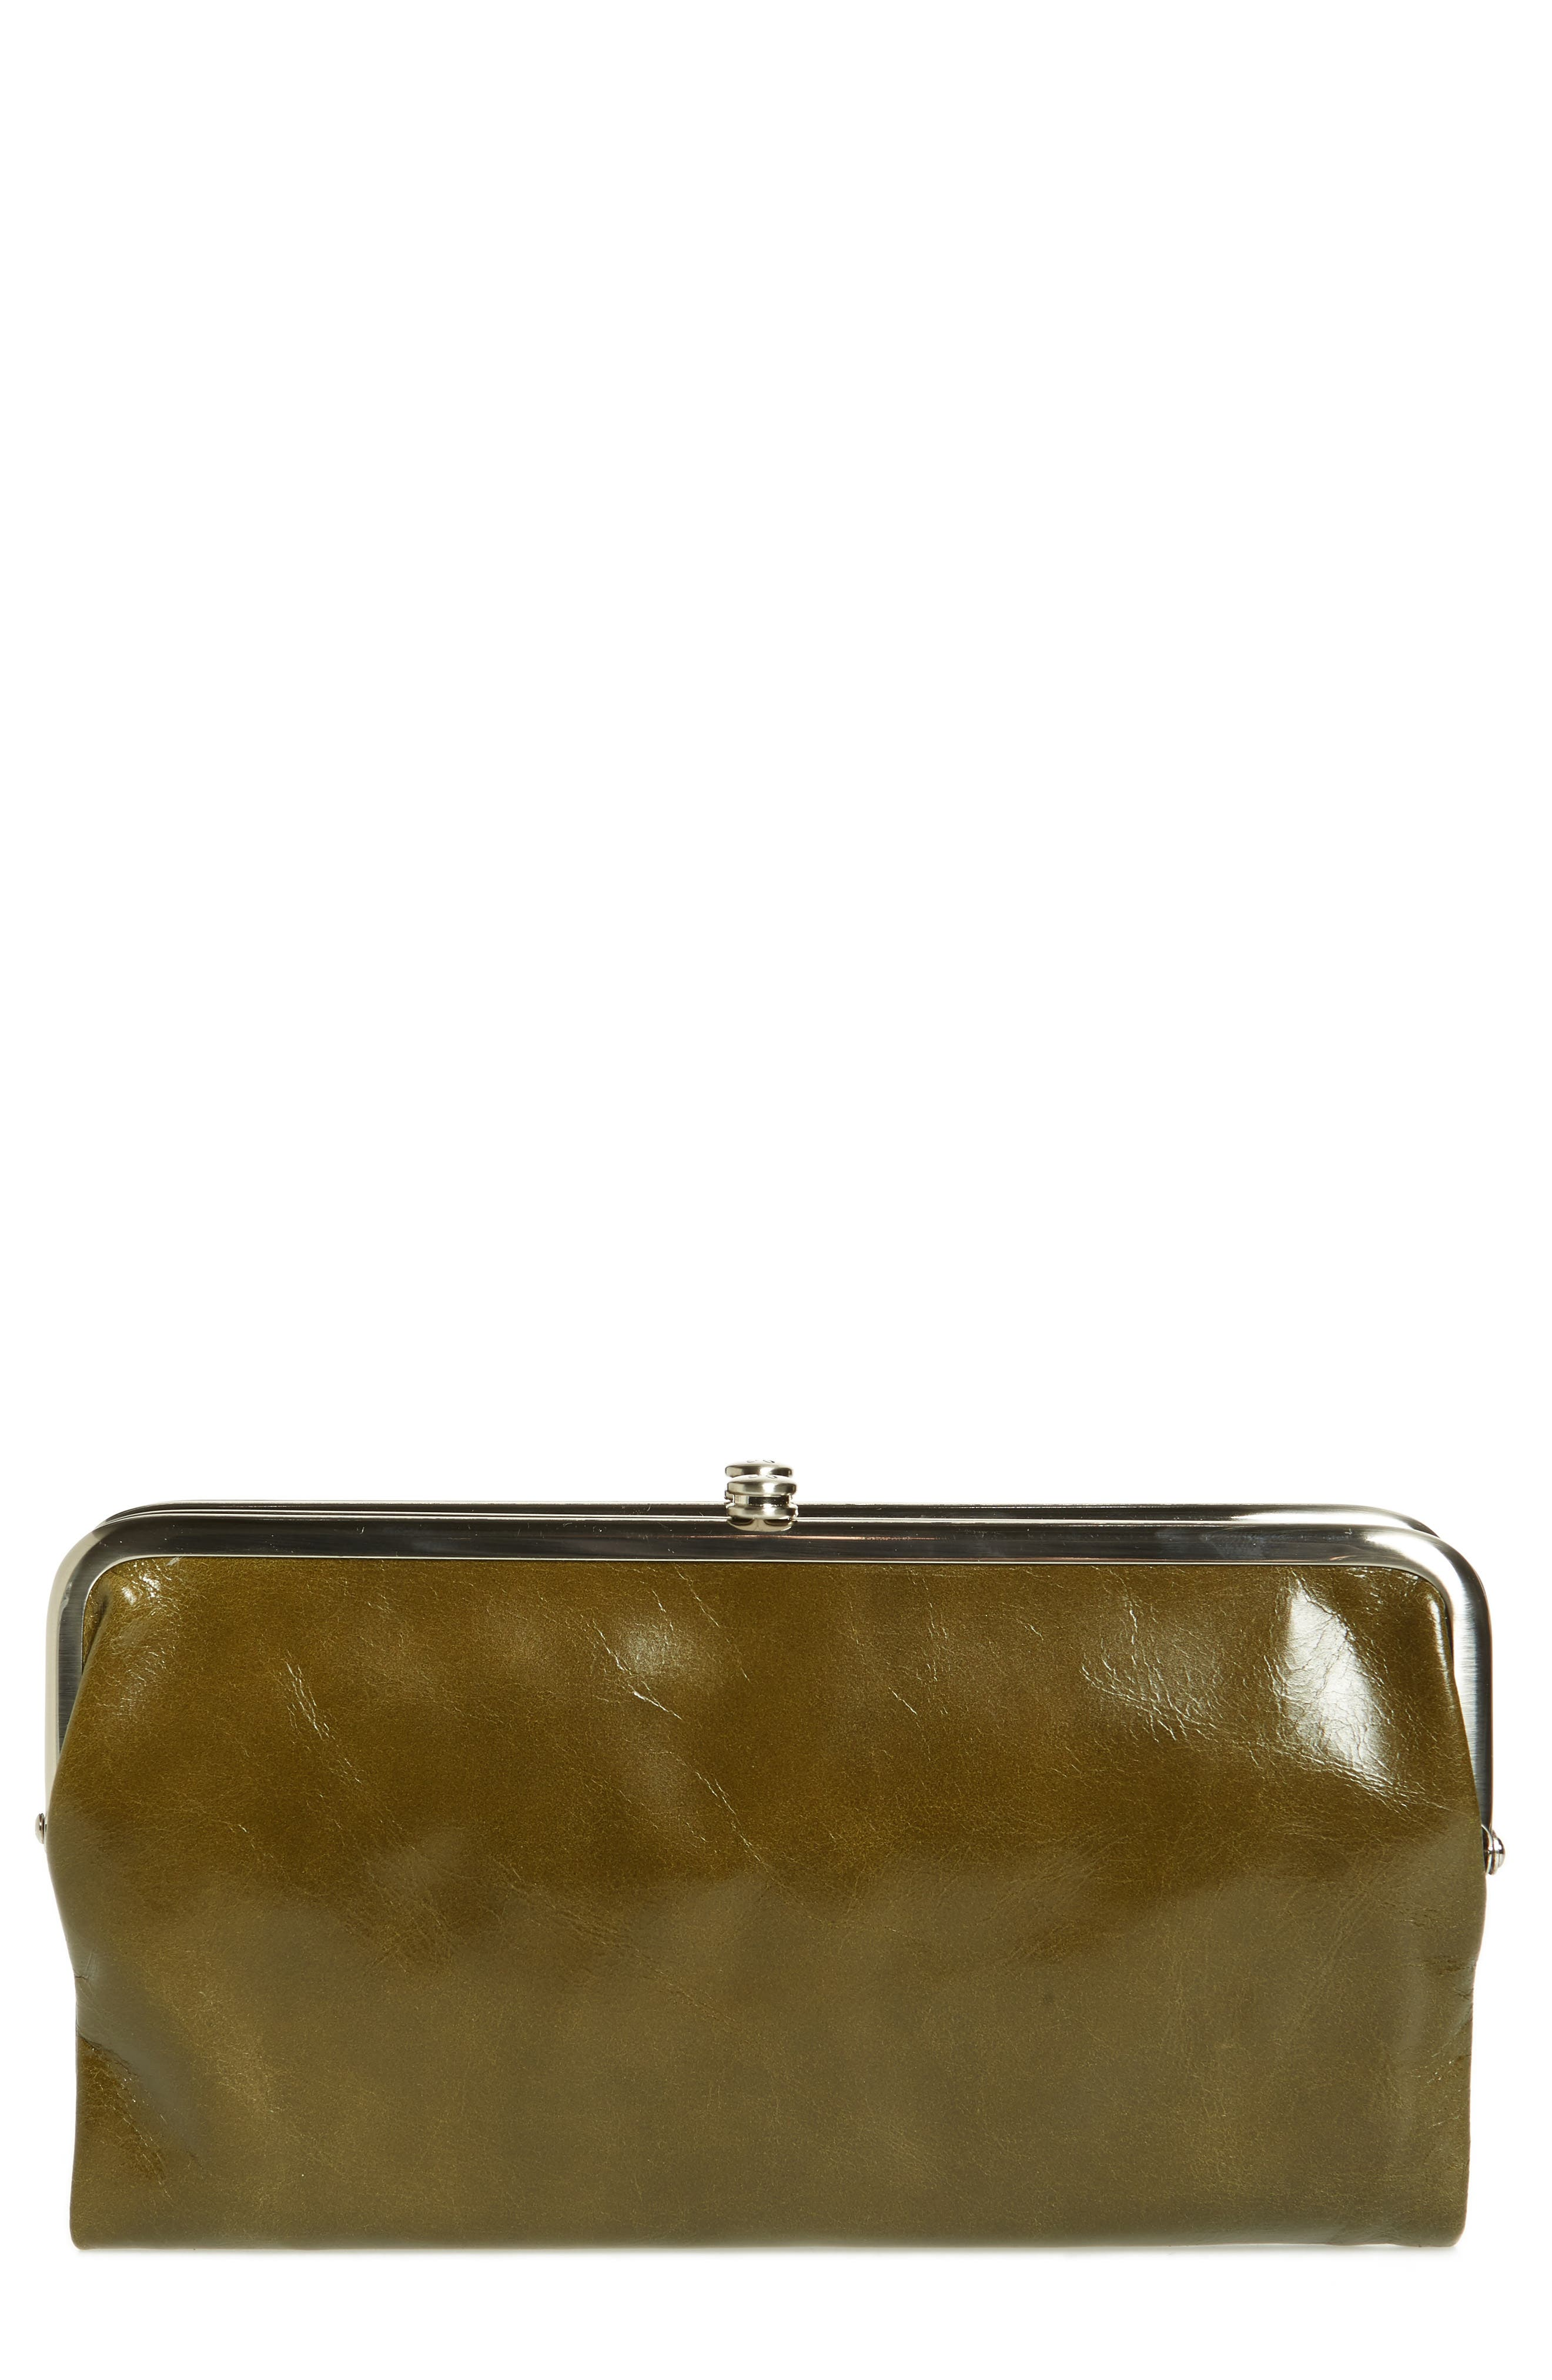 'Lauren' Leather Double Frame Clutch,                         Main,                         color, Willow